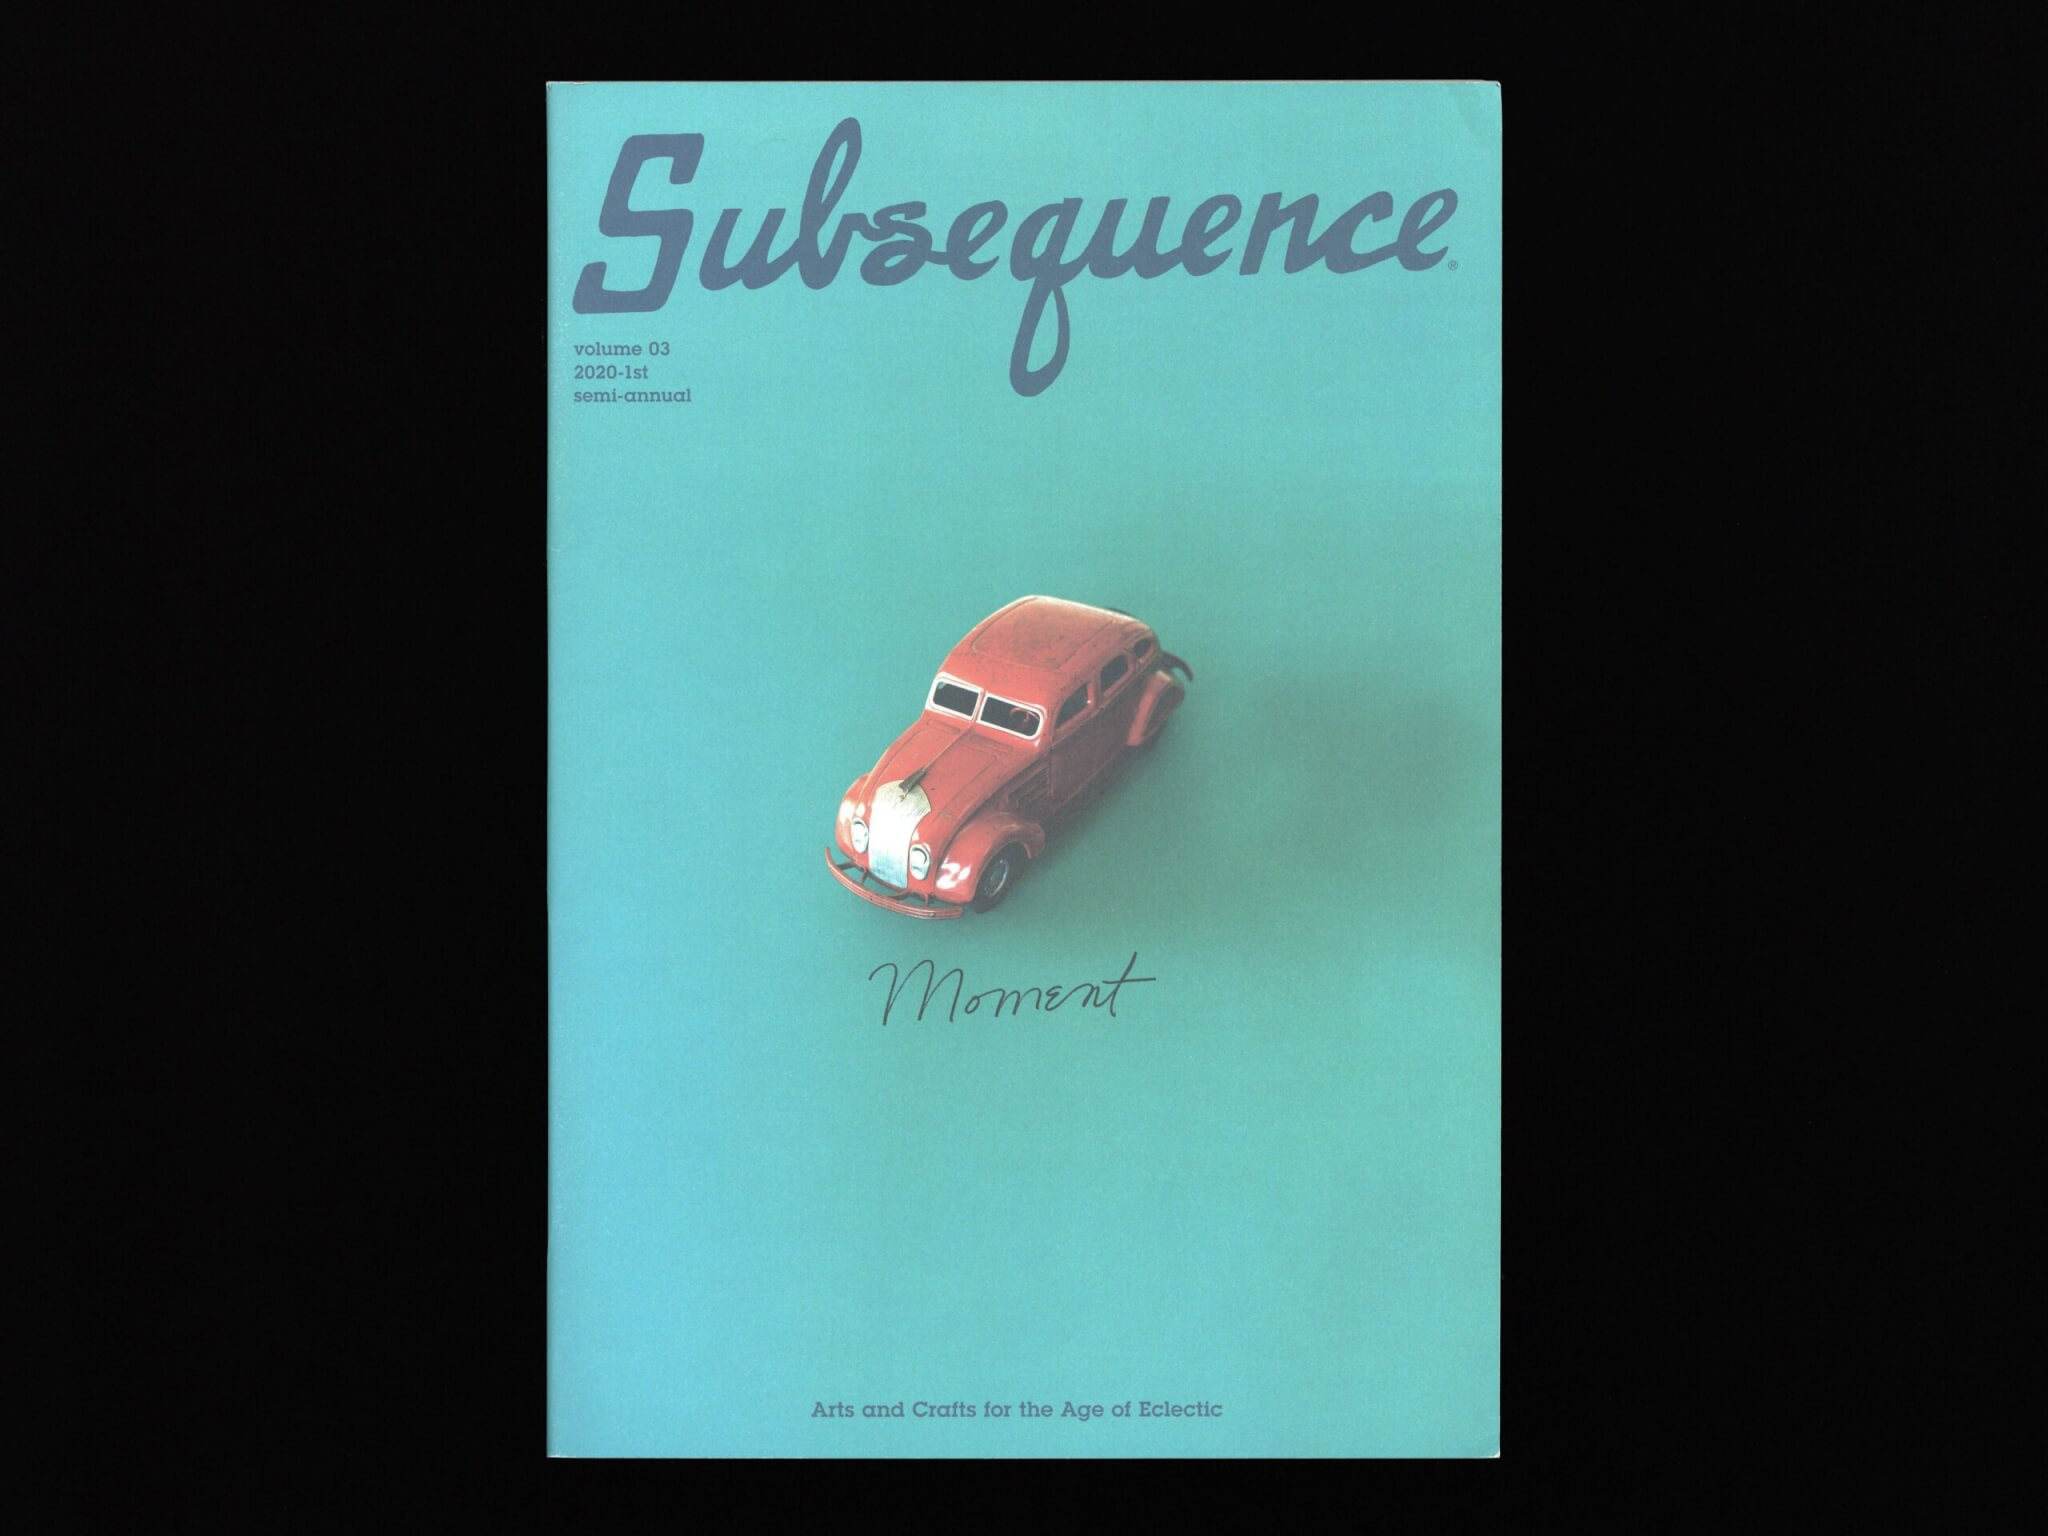 http newdistributionhouse.com image subsequence vol3 0